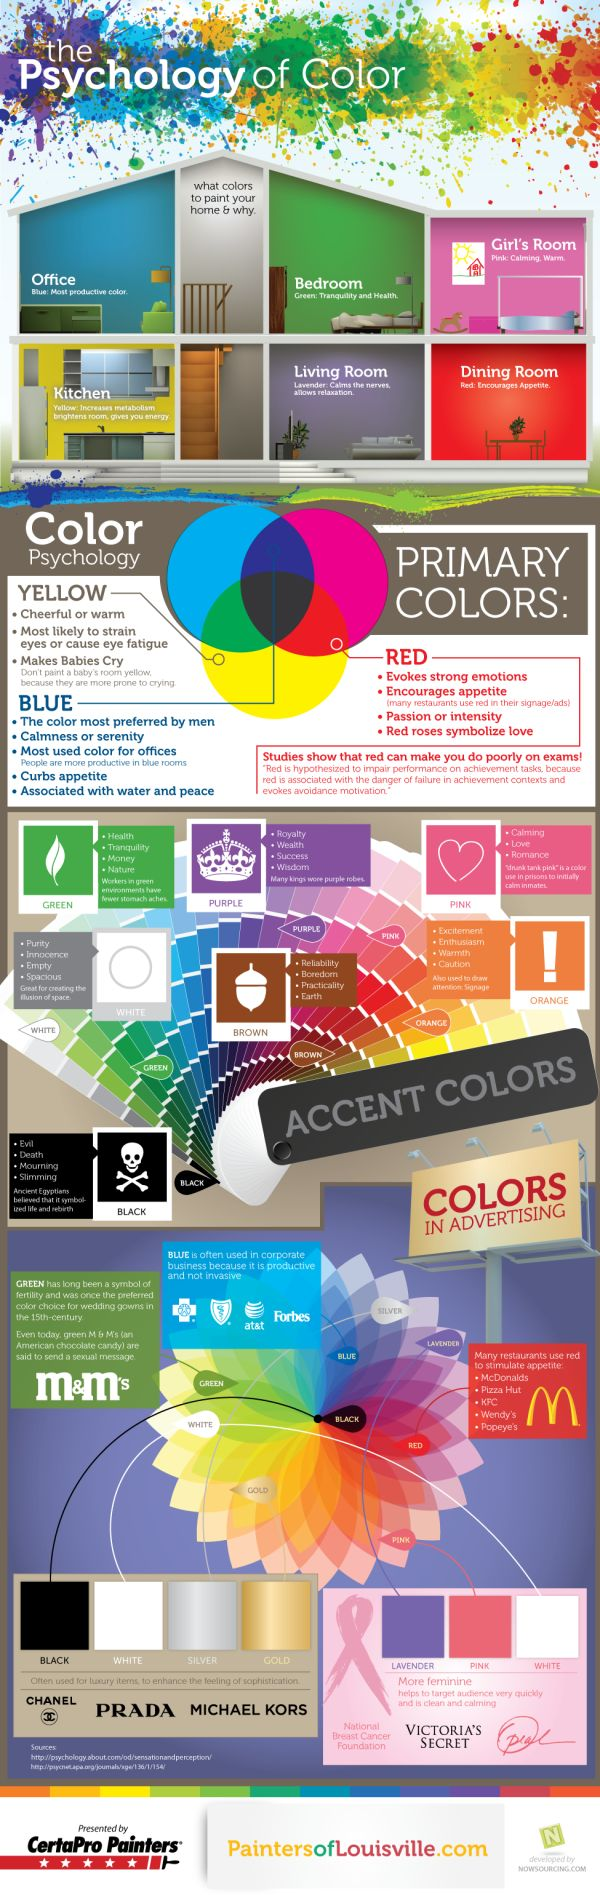 CertaPro Painters - the psychology of color